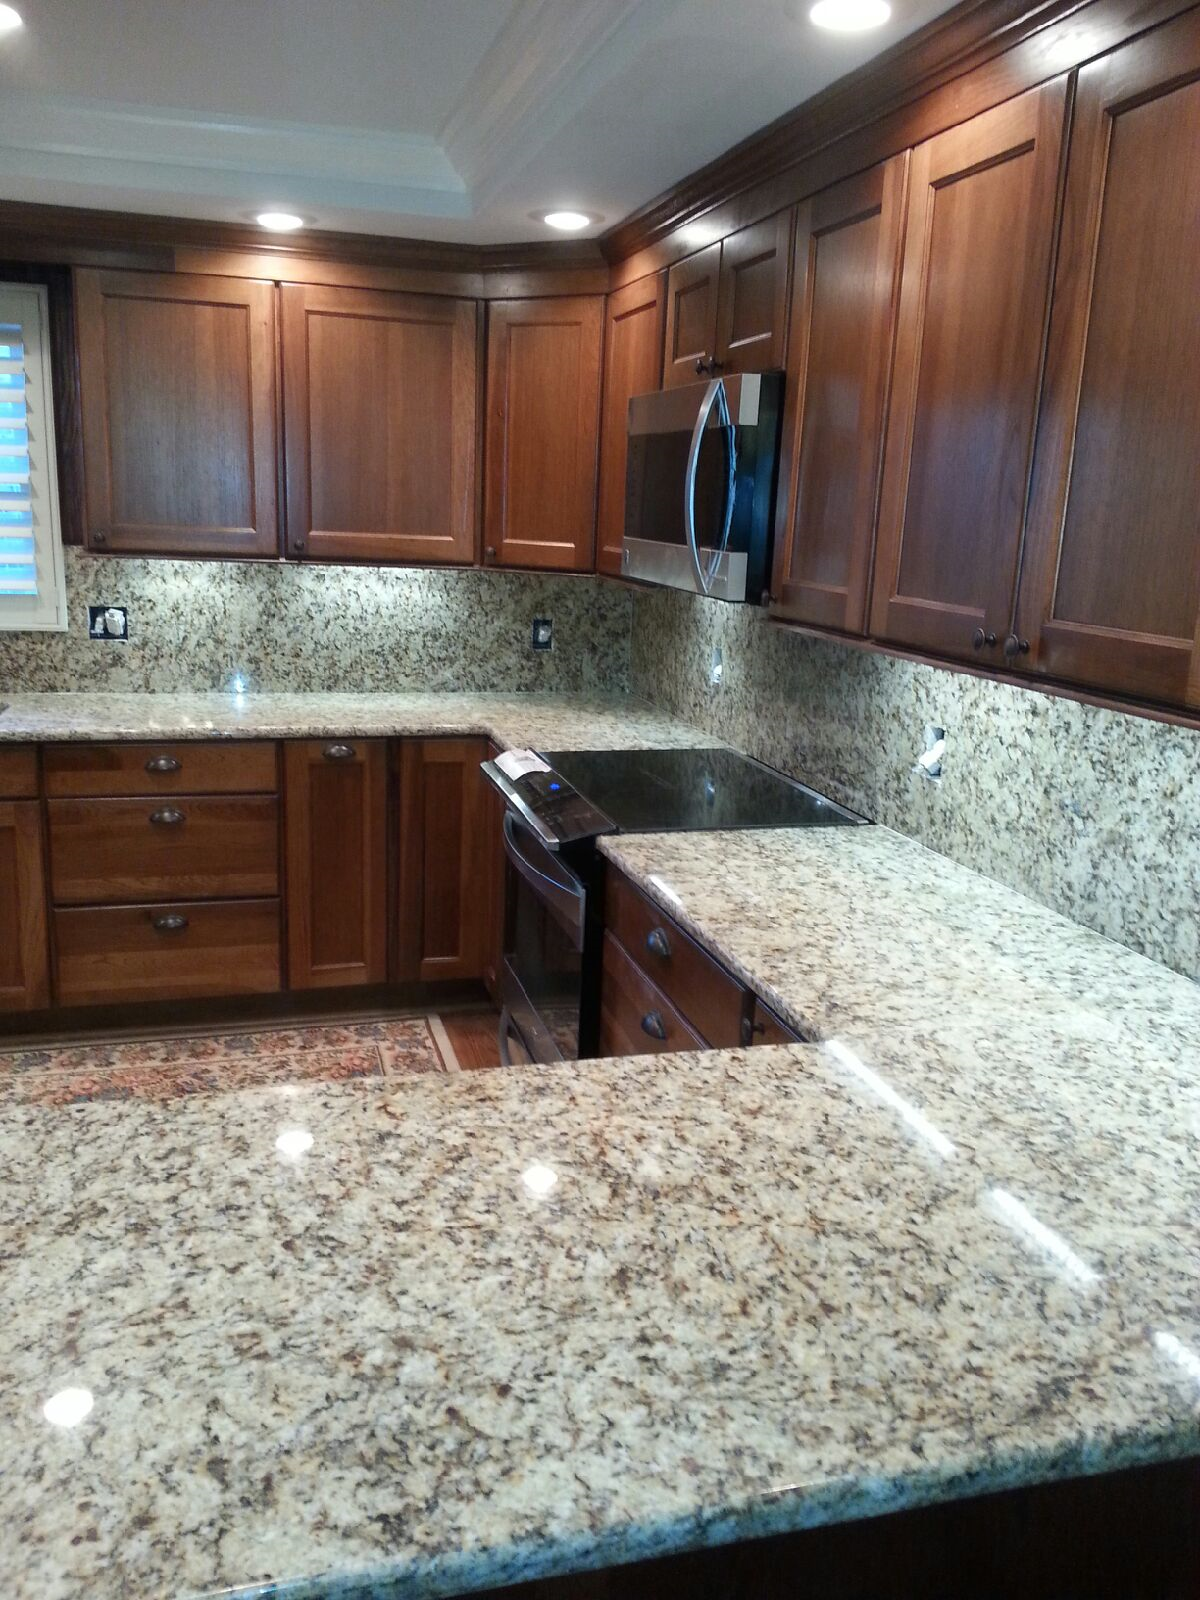 What Color Countertop Goes Best With White Cabinets In Kitchen